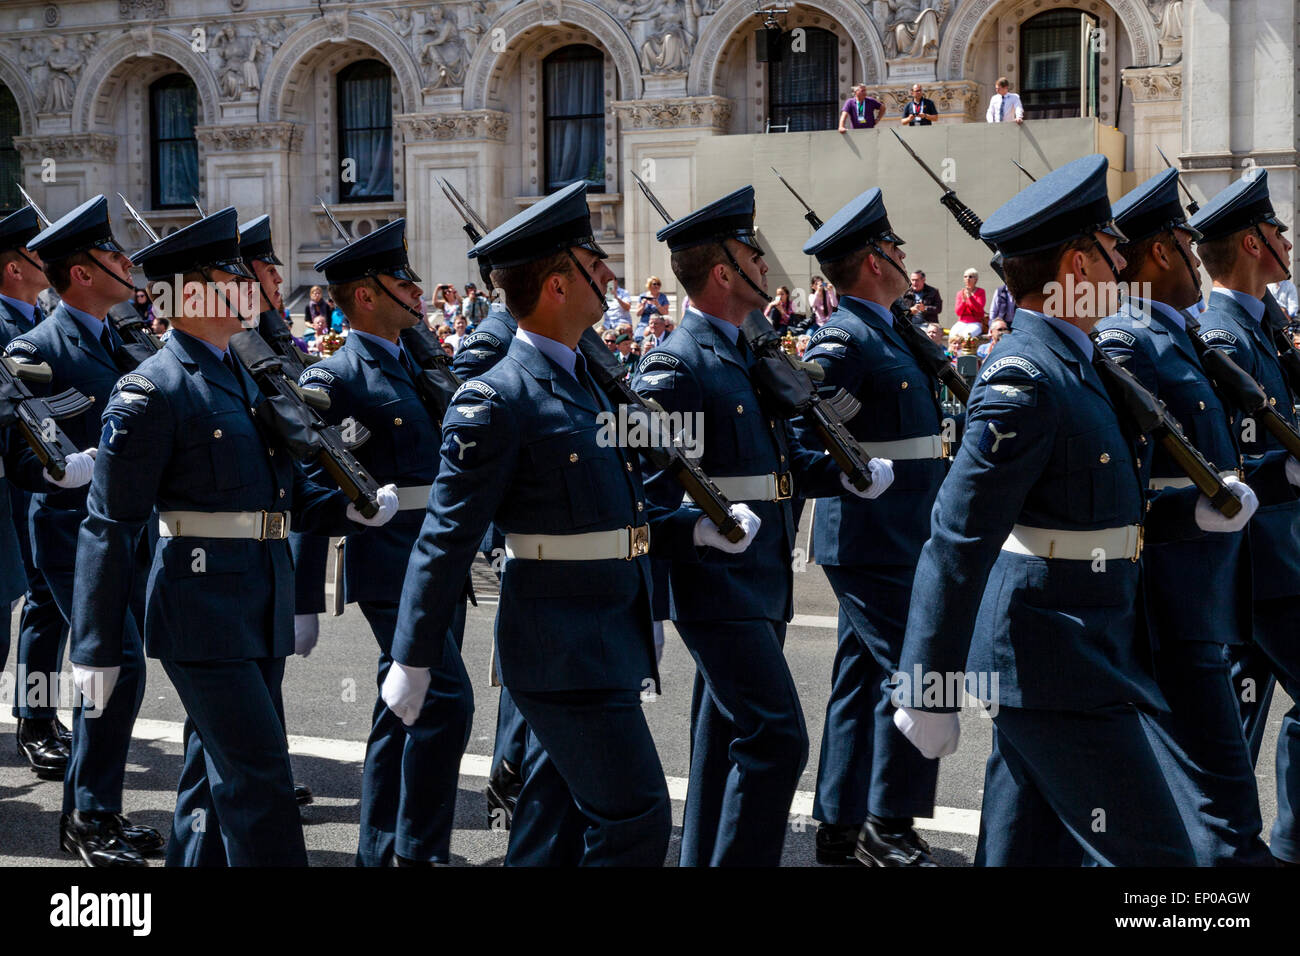 A Service Attachment Of The Royal Air Force March Past The Cenotaph As Part Of The 70th Anniversary of VE Day, London, - Stock Image